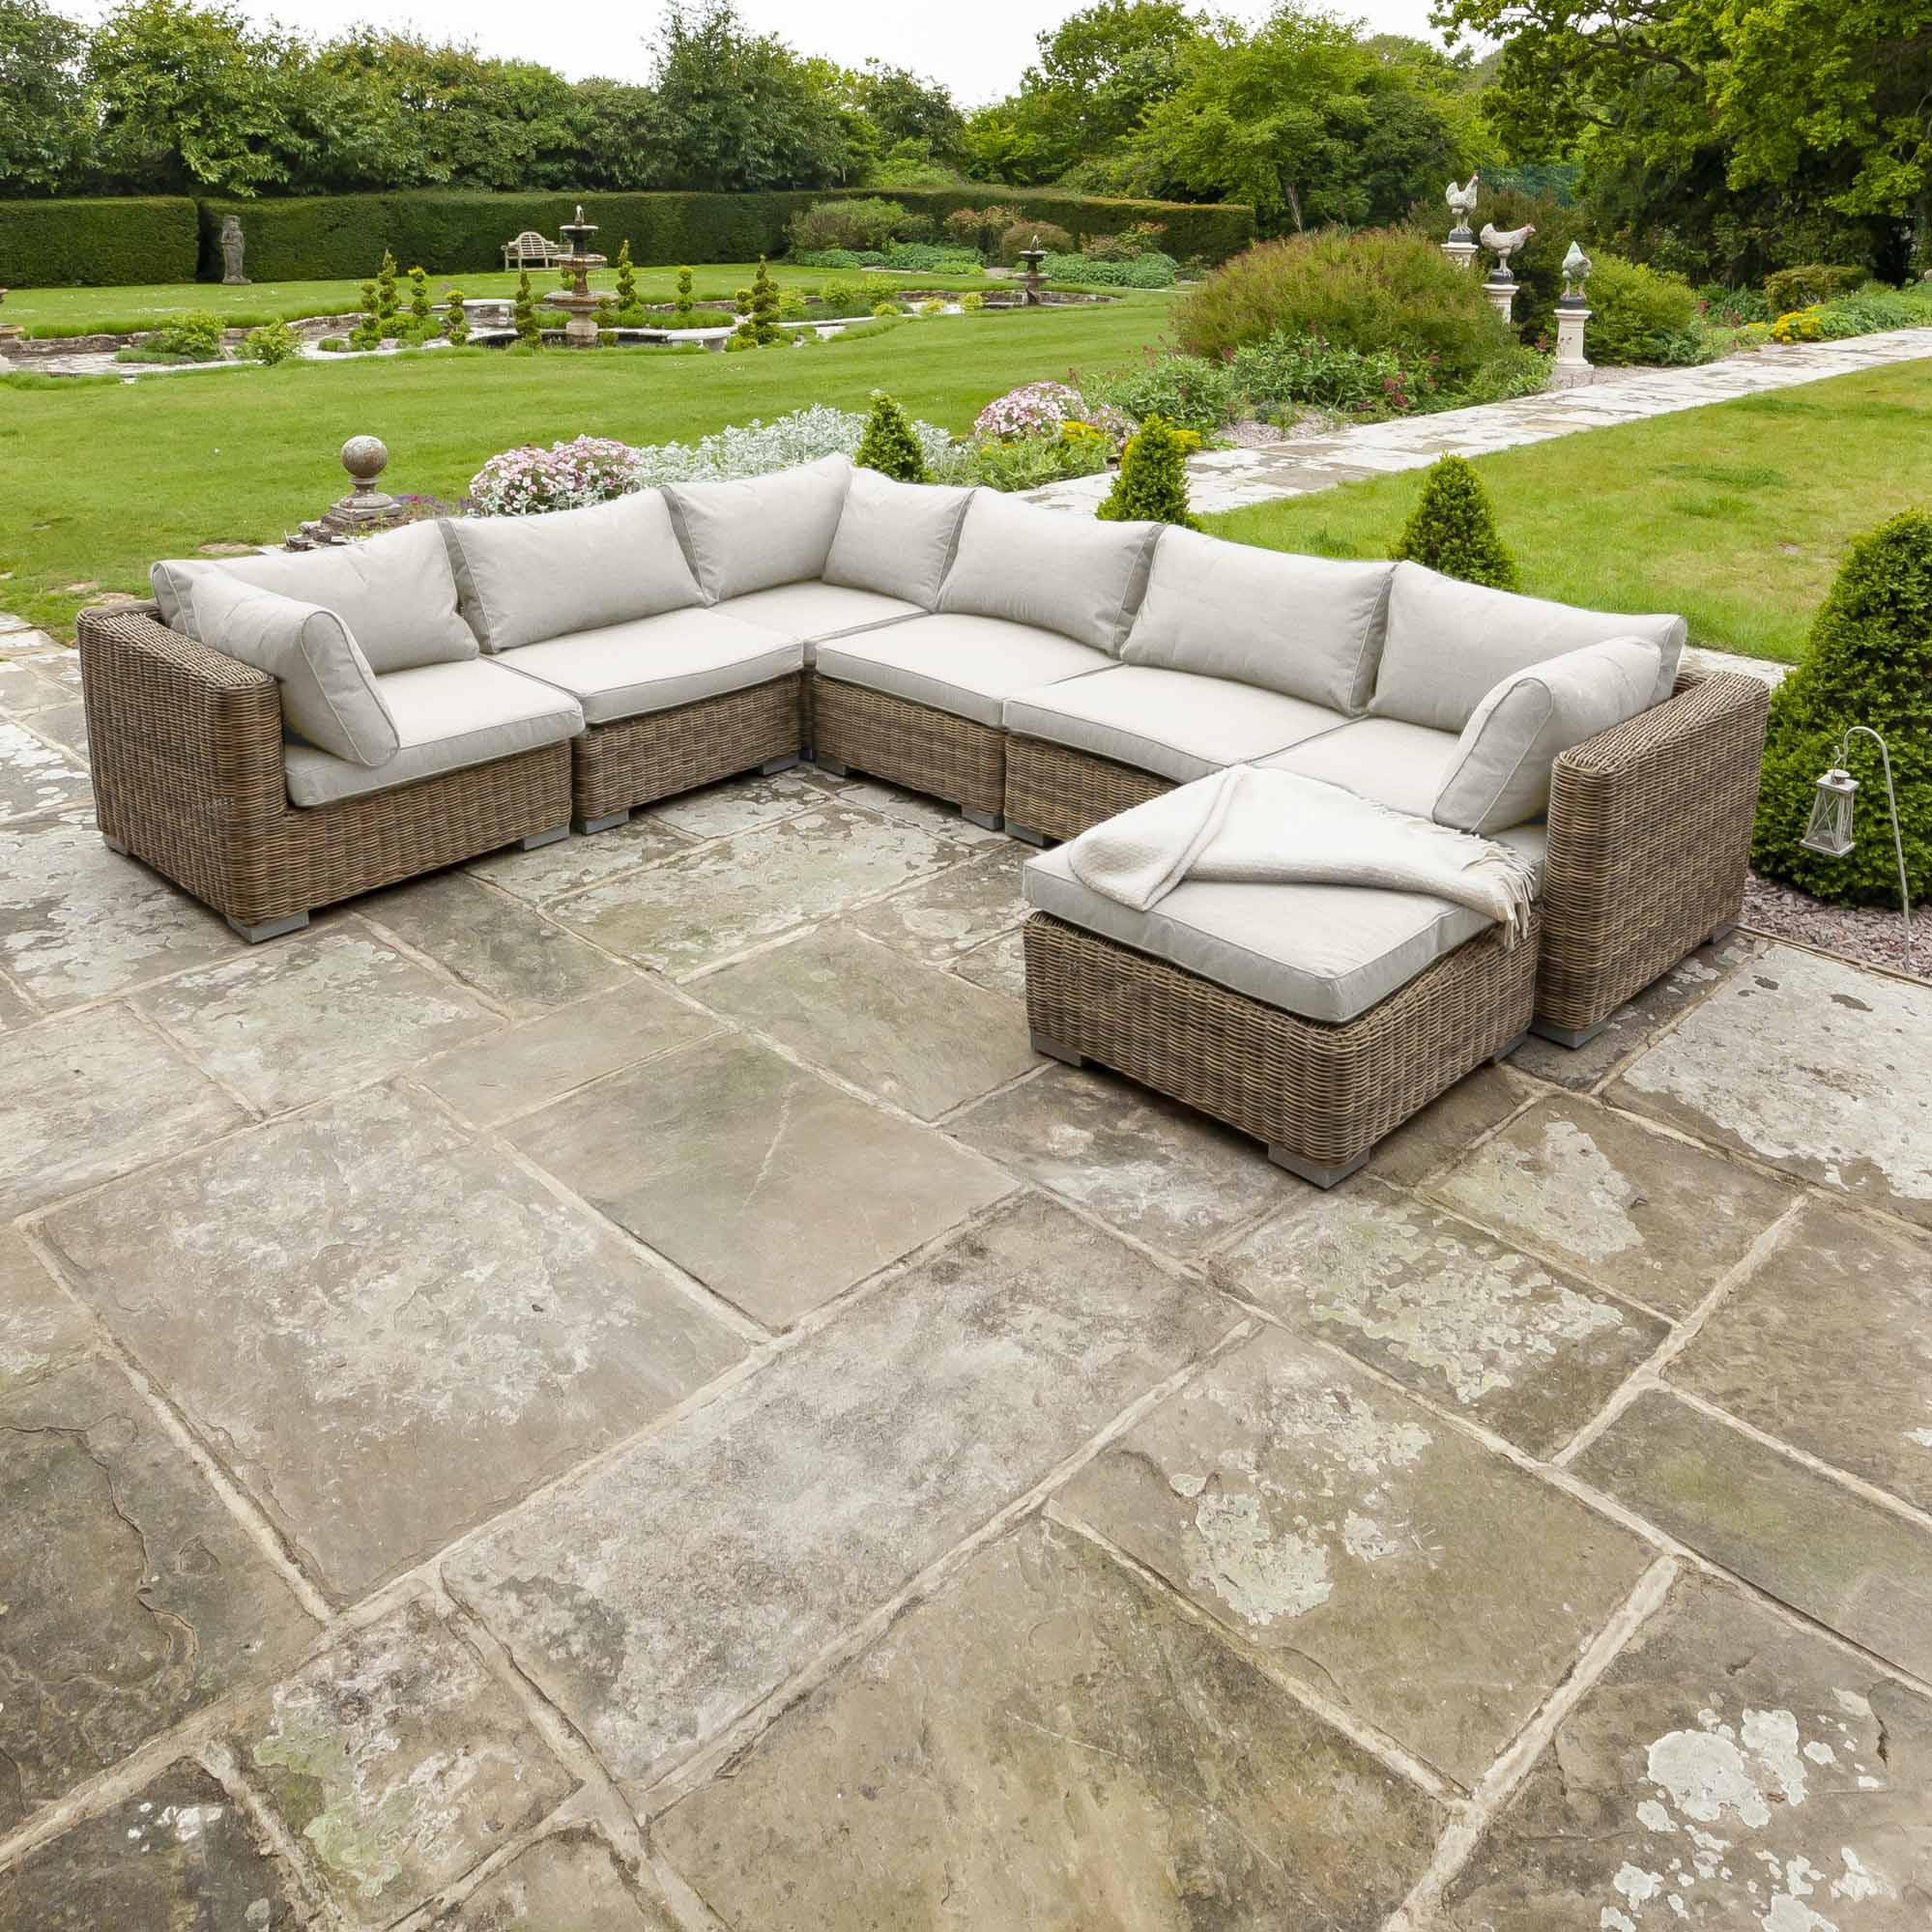 Livingstone 6 Seater Sofa Set With Footstool